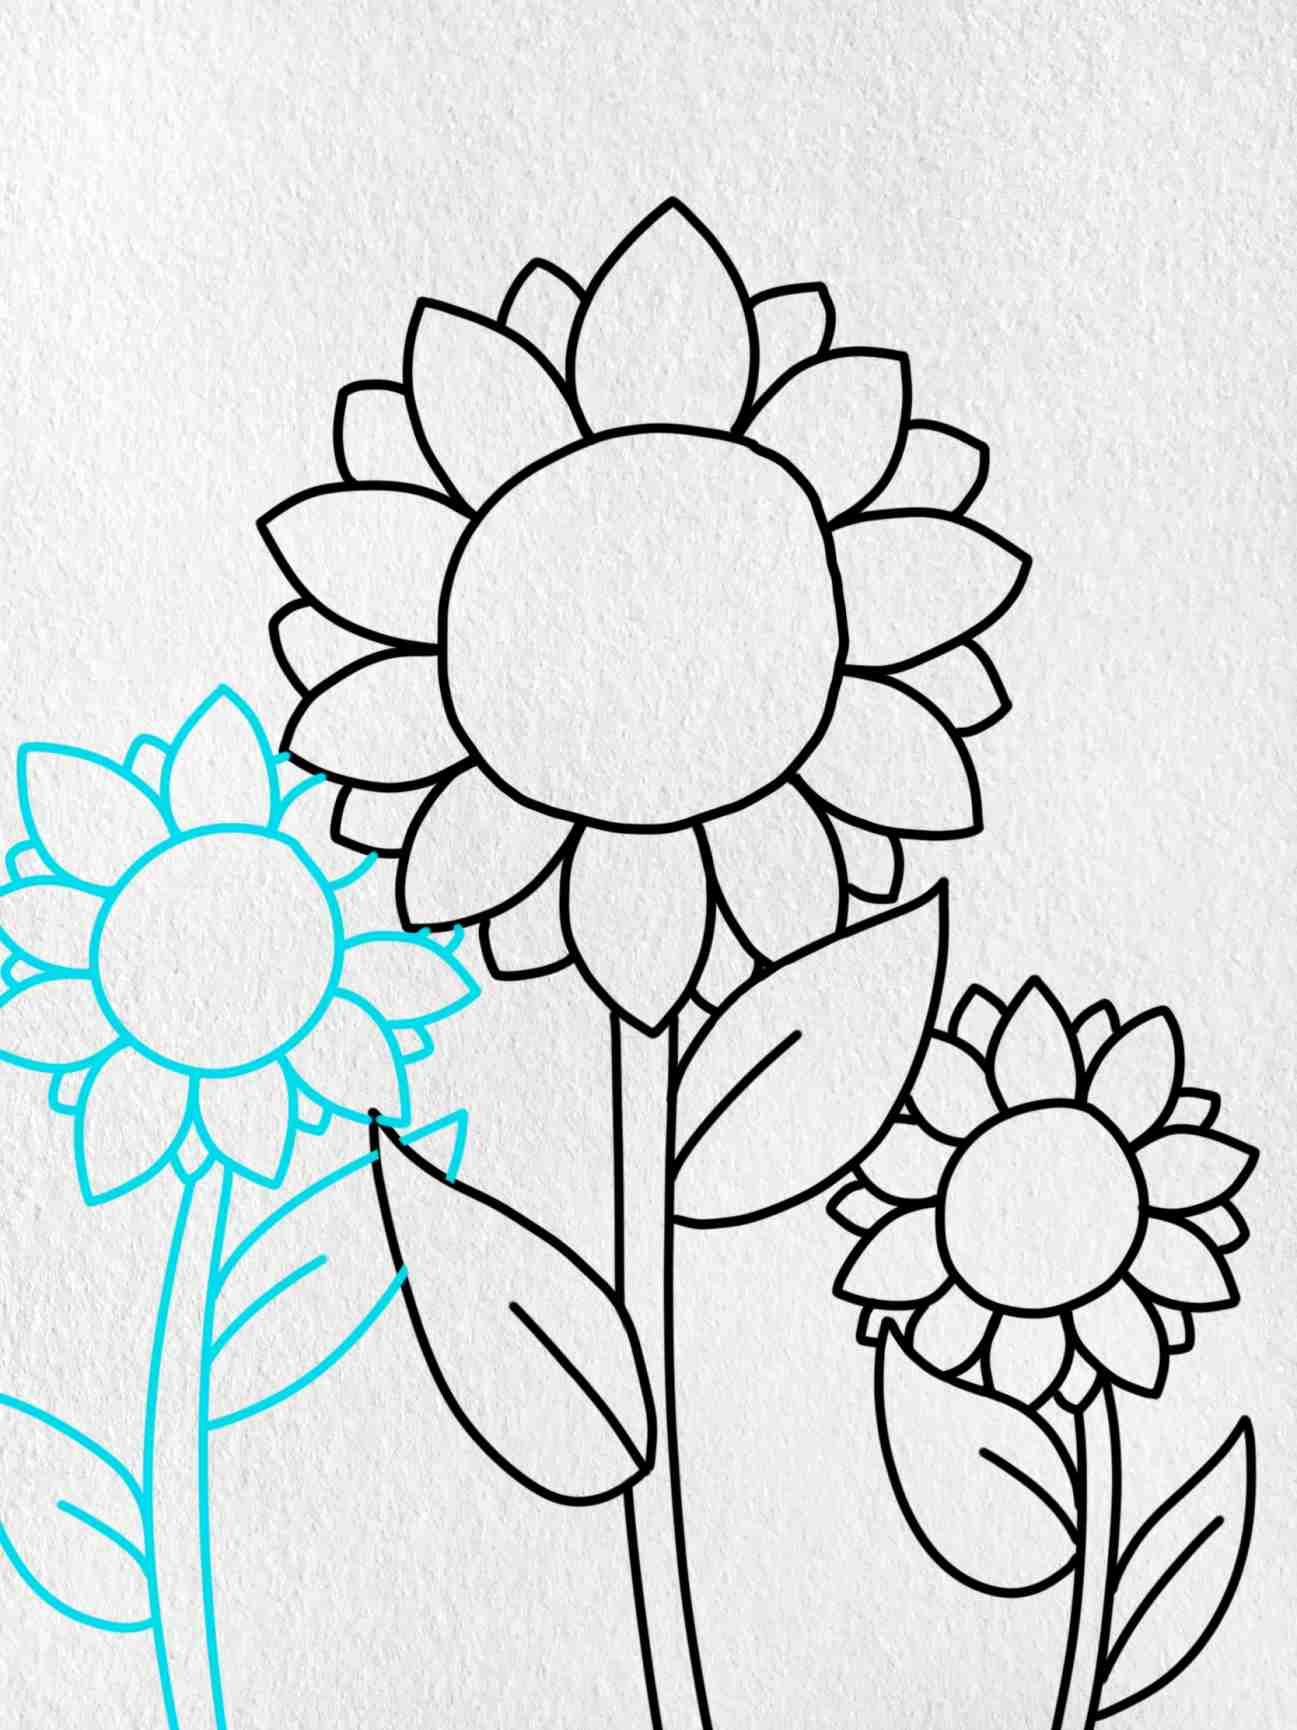 How To Draw Sunflowers: Step 5